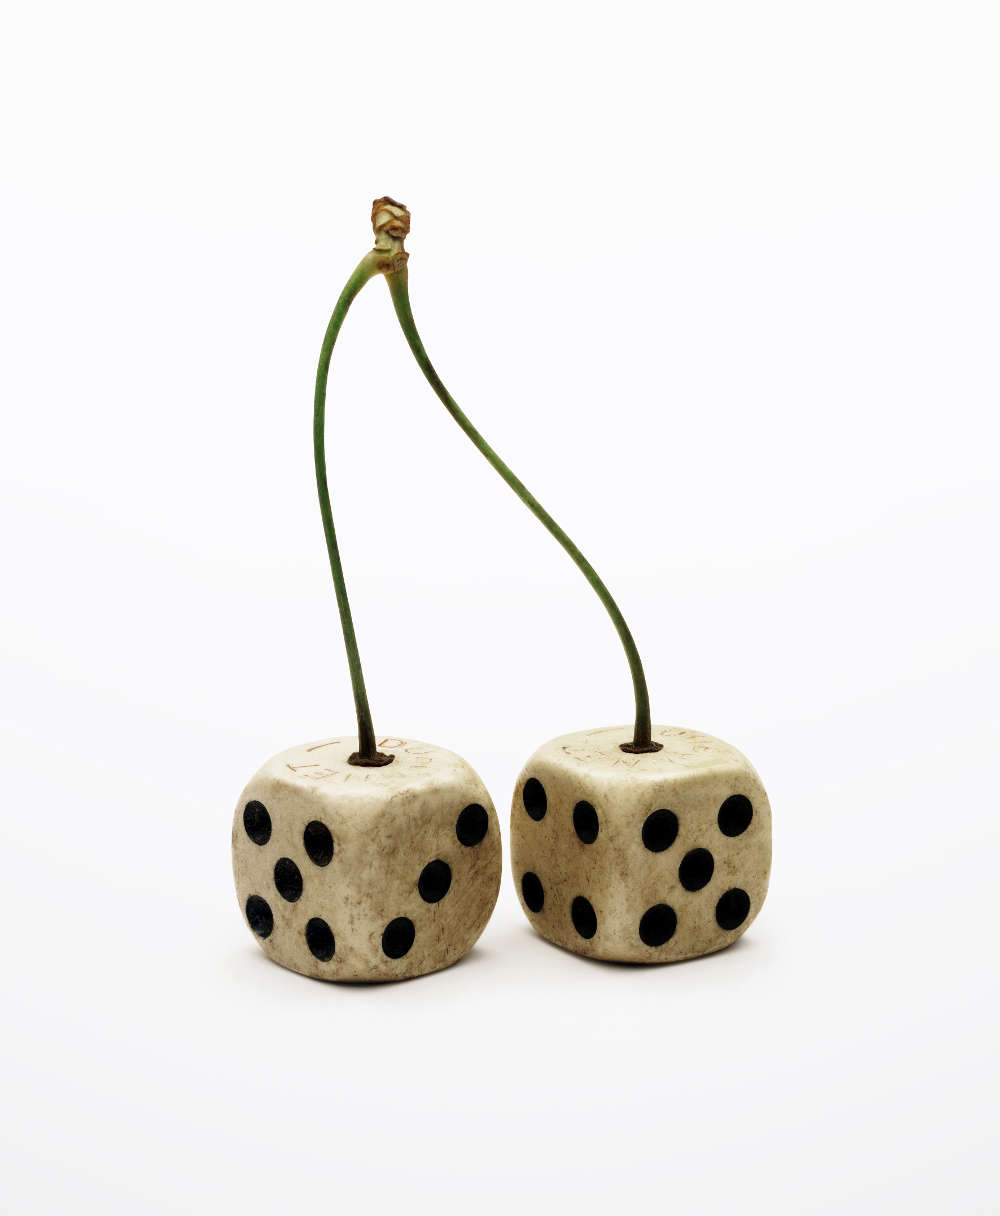 Nancy Fouts, Cherry Dice, 2011 (c) Nancy Fouts, courtesy of Flowers Gallery